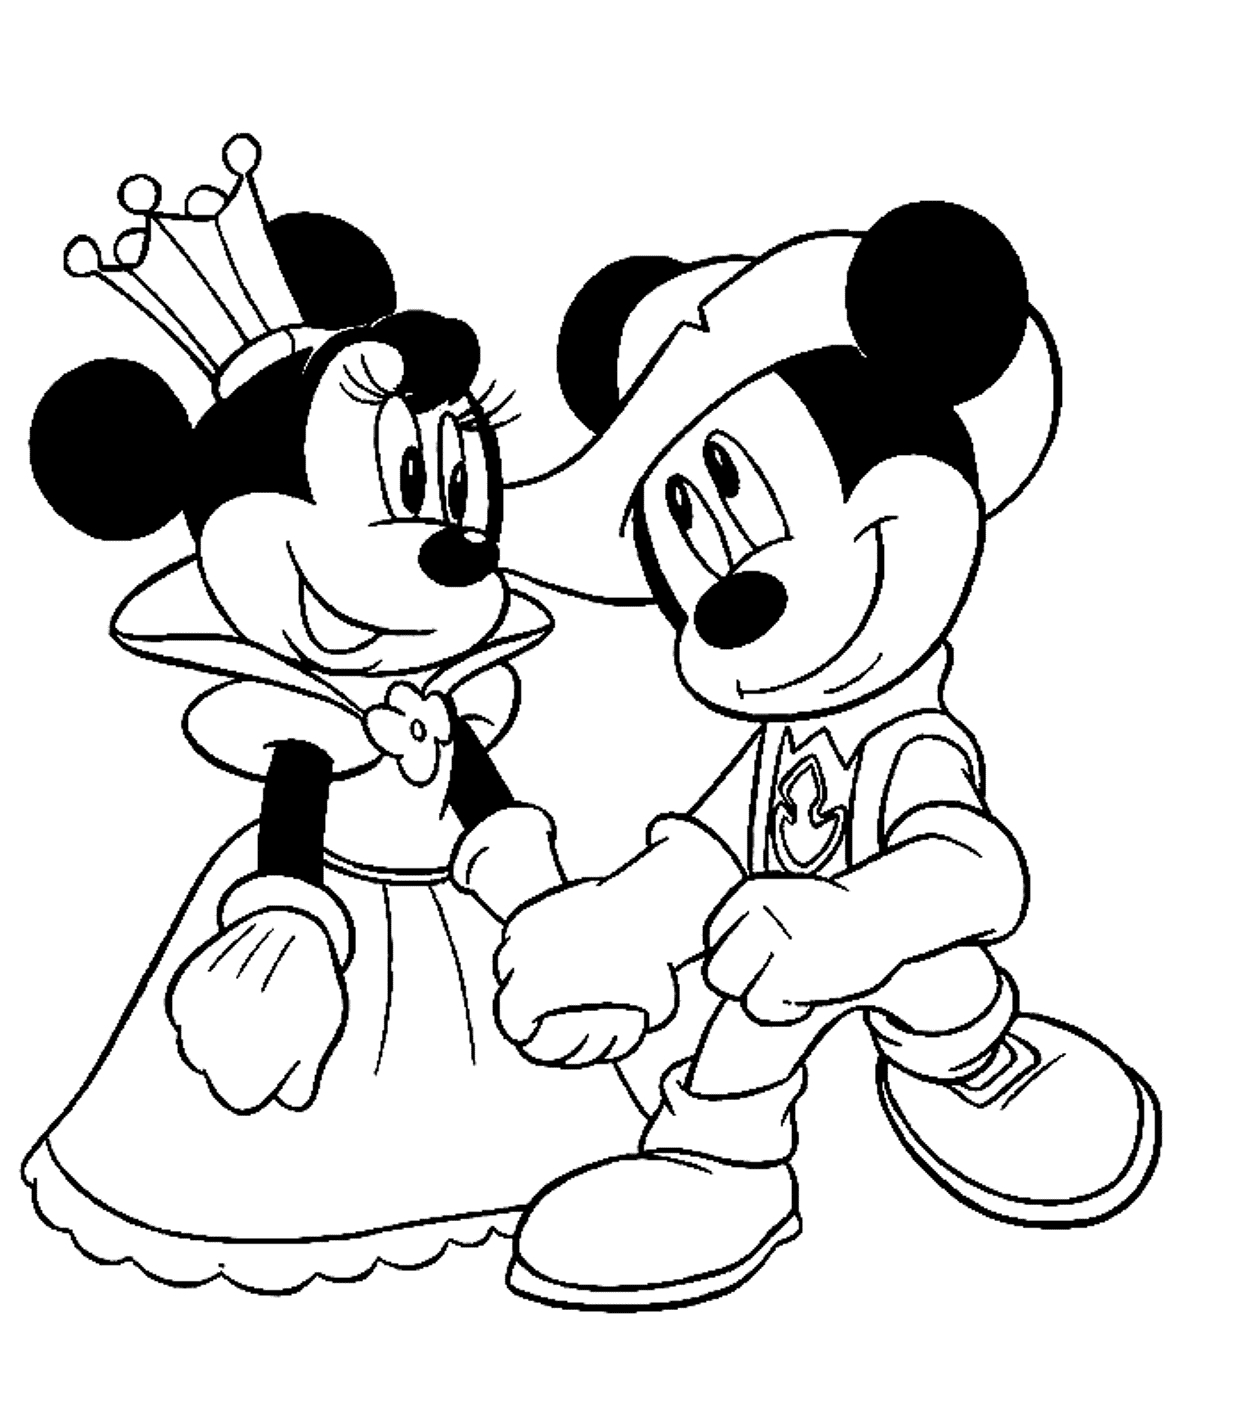 1246x1424 Pencil Drawings Of Mickey And Minnie Mouse